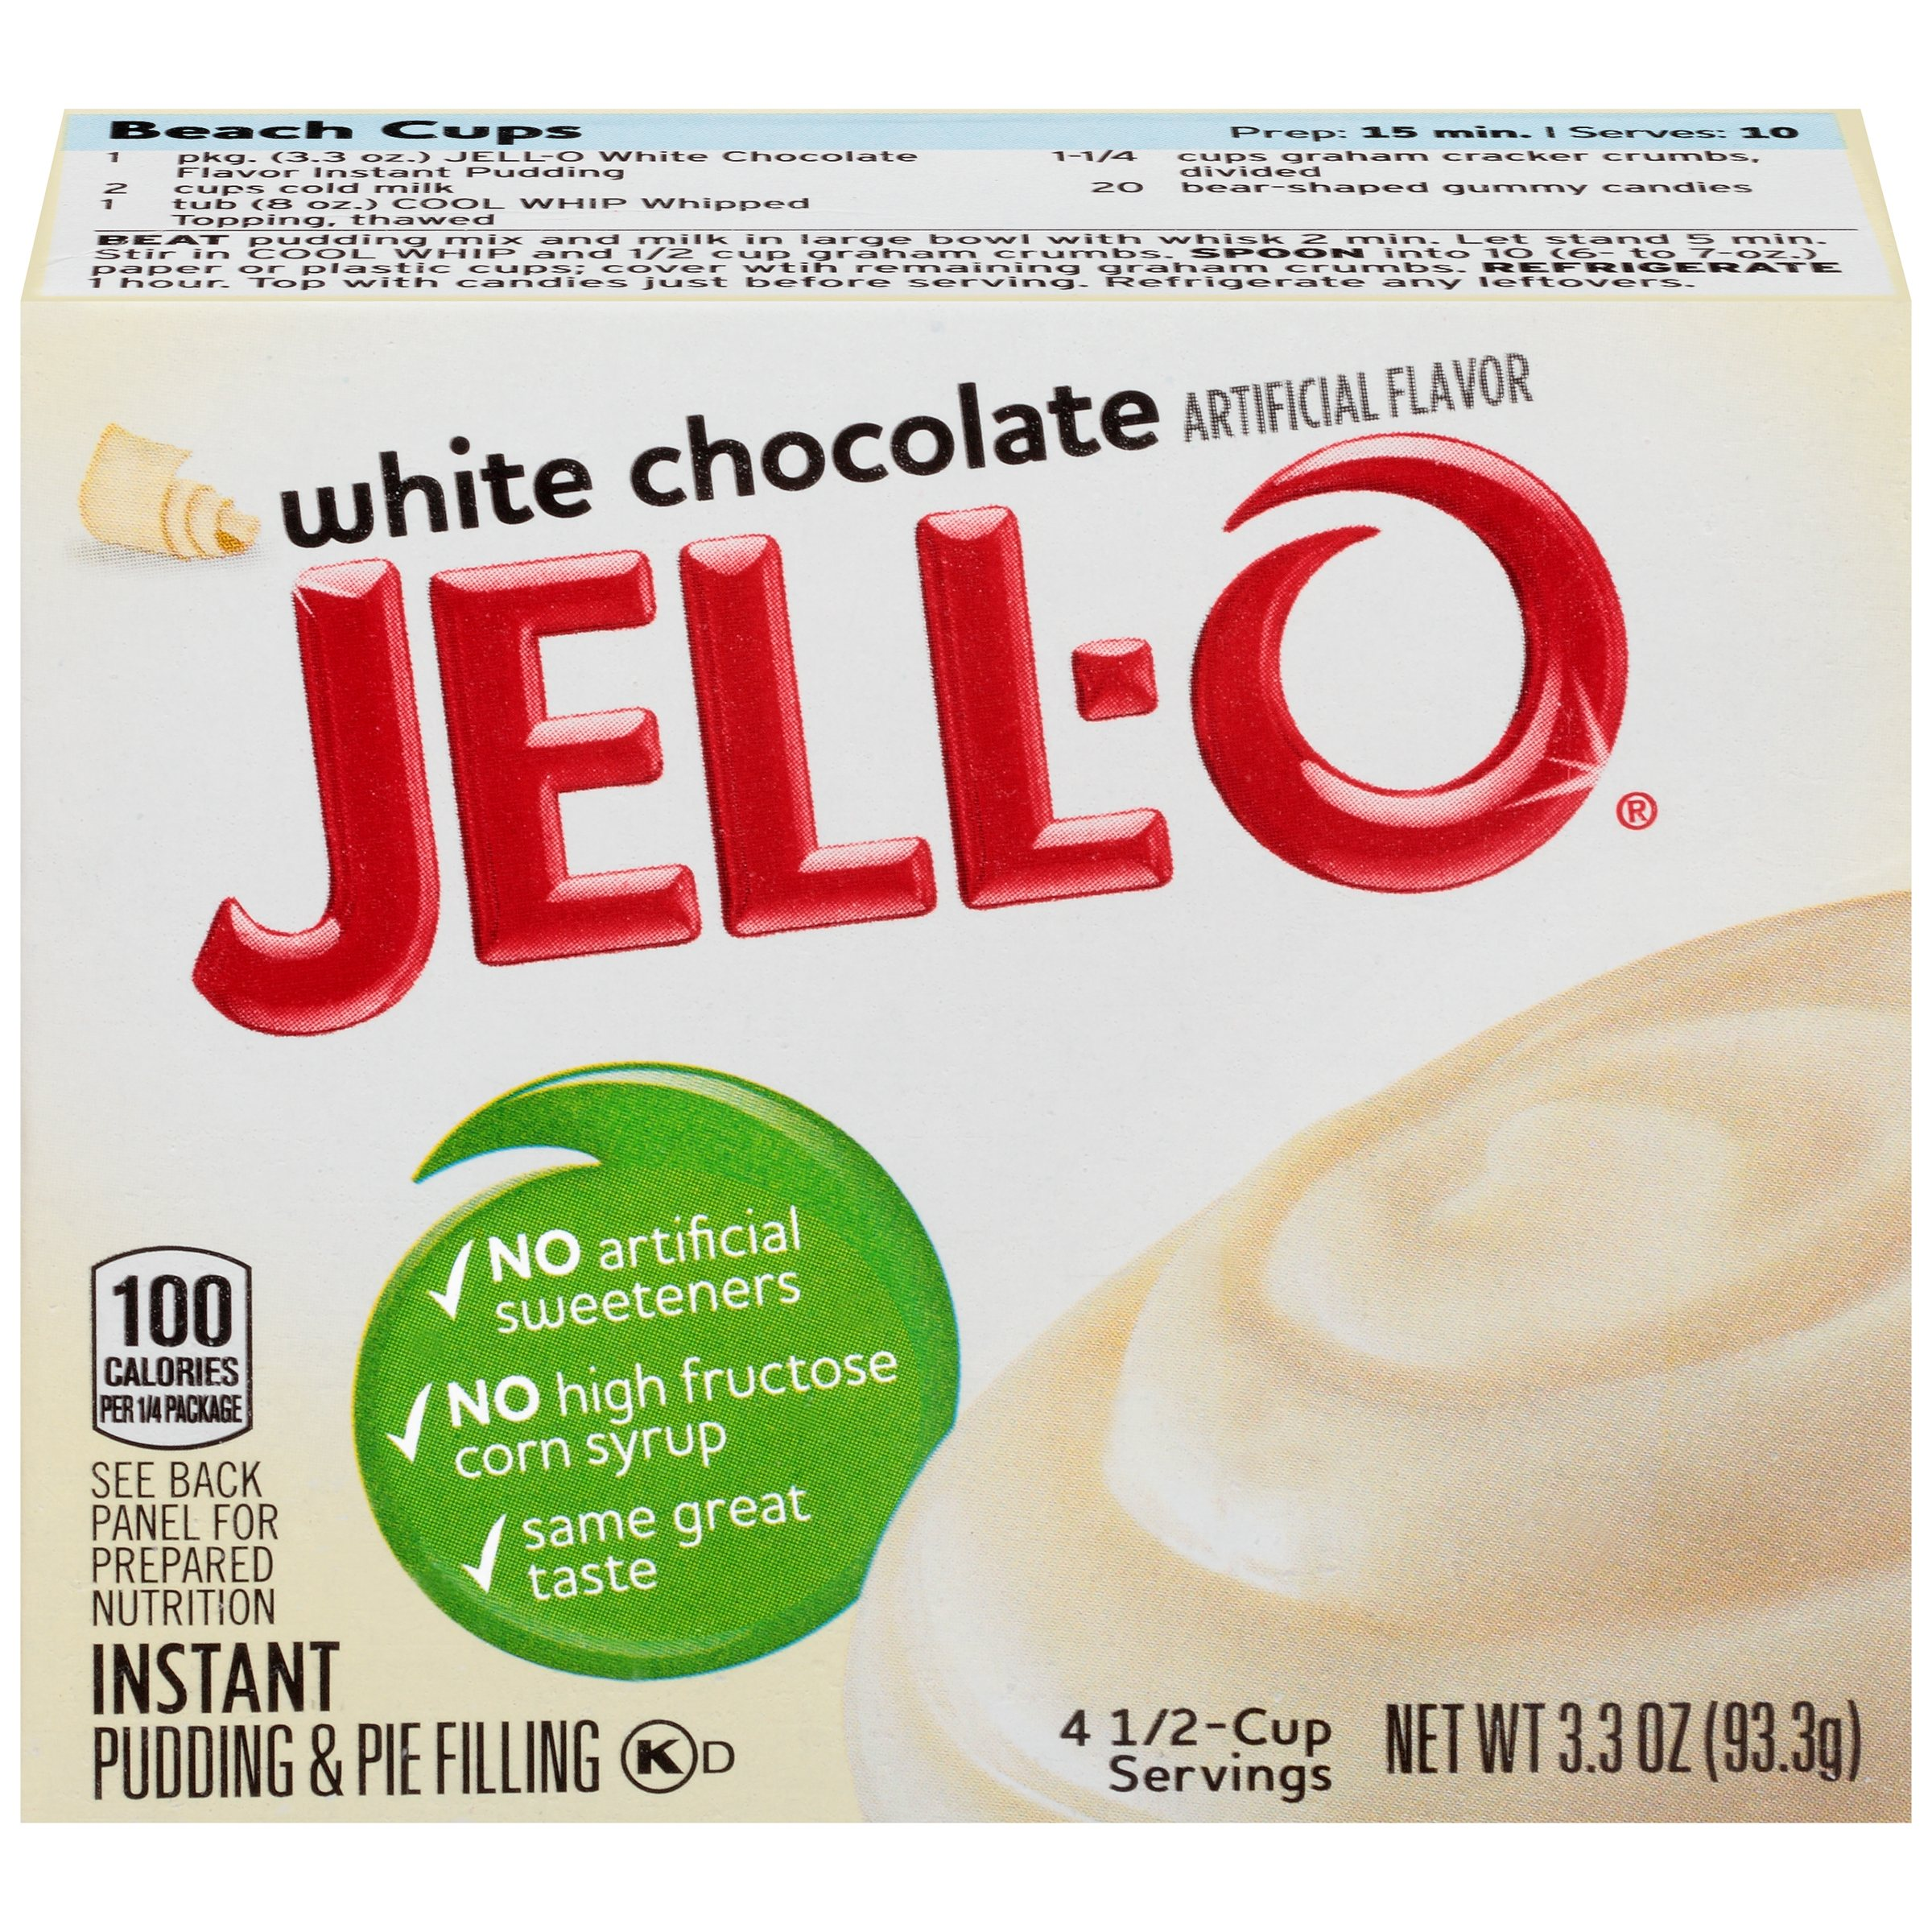 Jell-O White Chocolate Instant Pudding & Pie Filling Mix 3.3 oz. Box